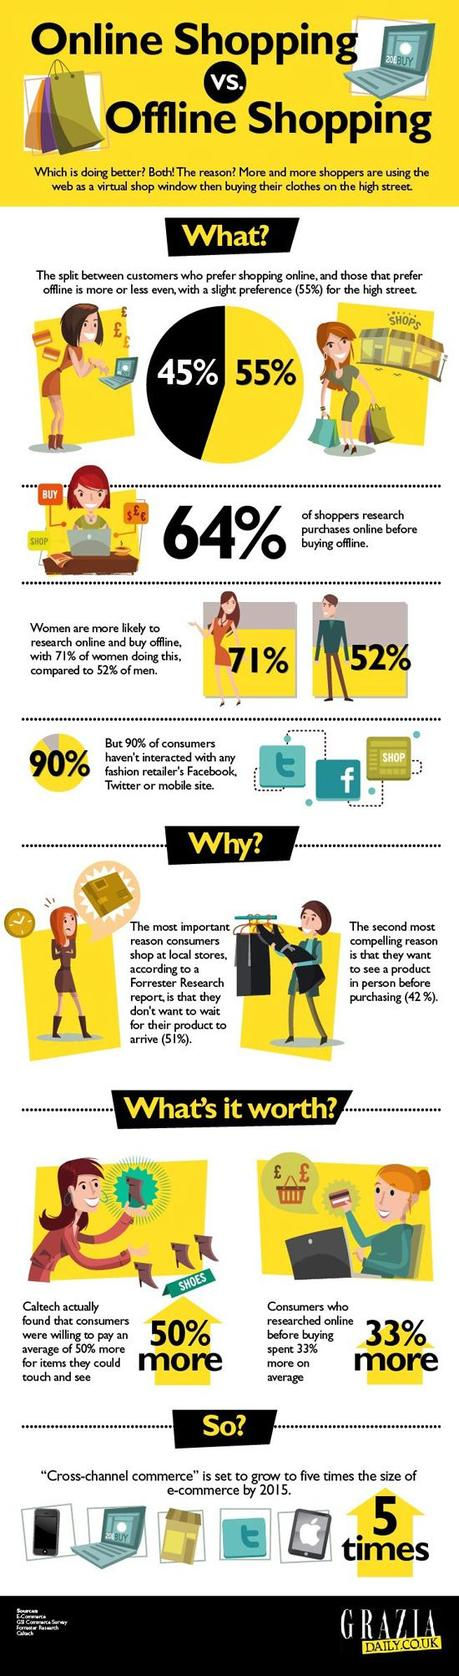 Infographic on Online vs Offline Shopping